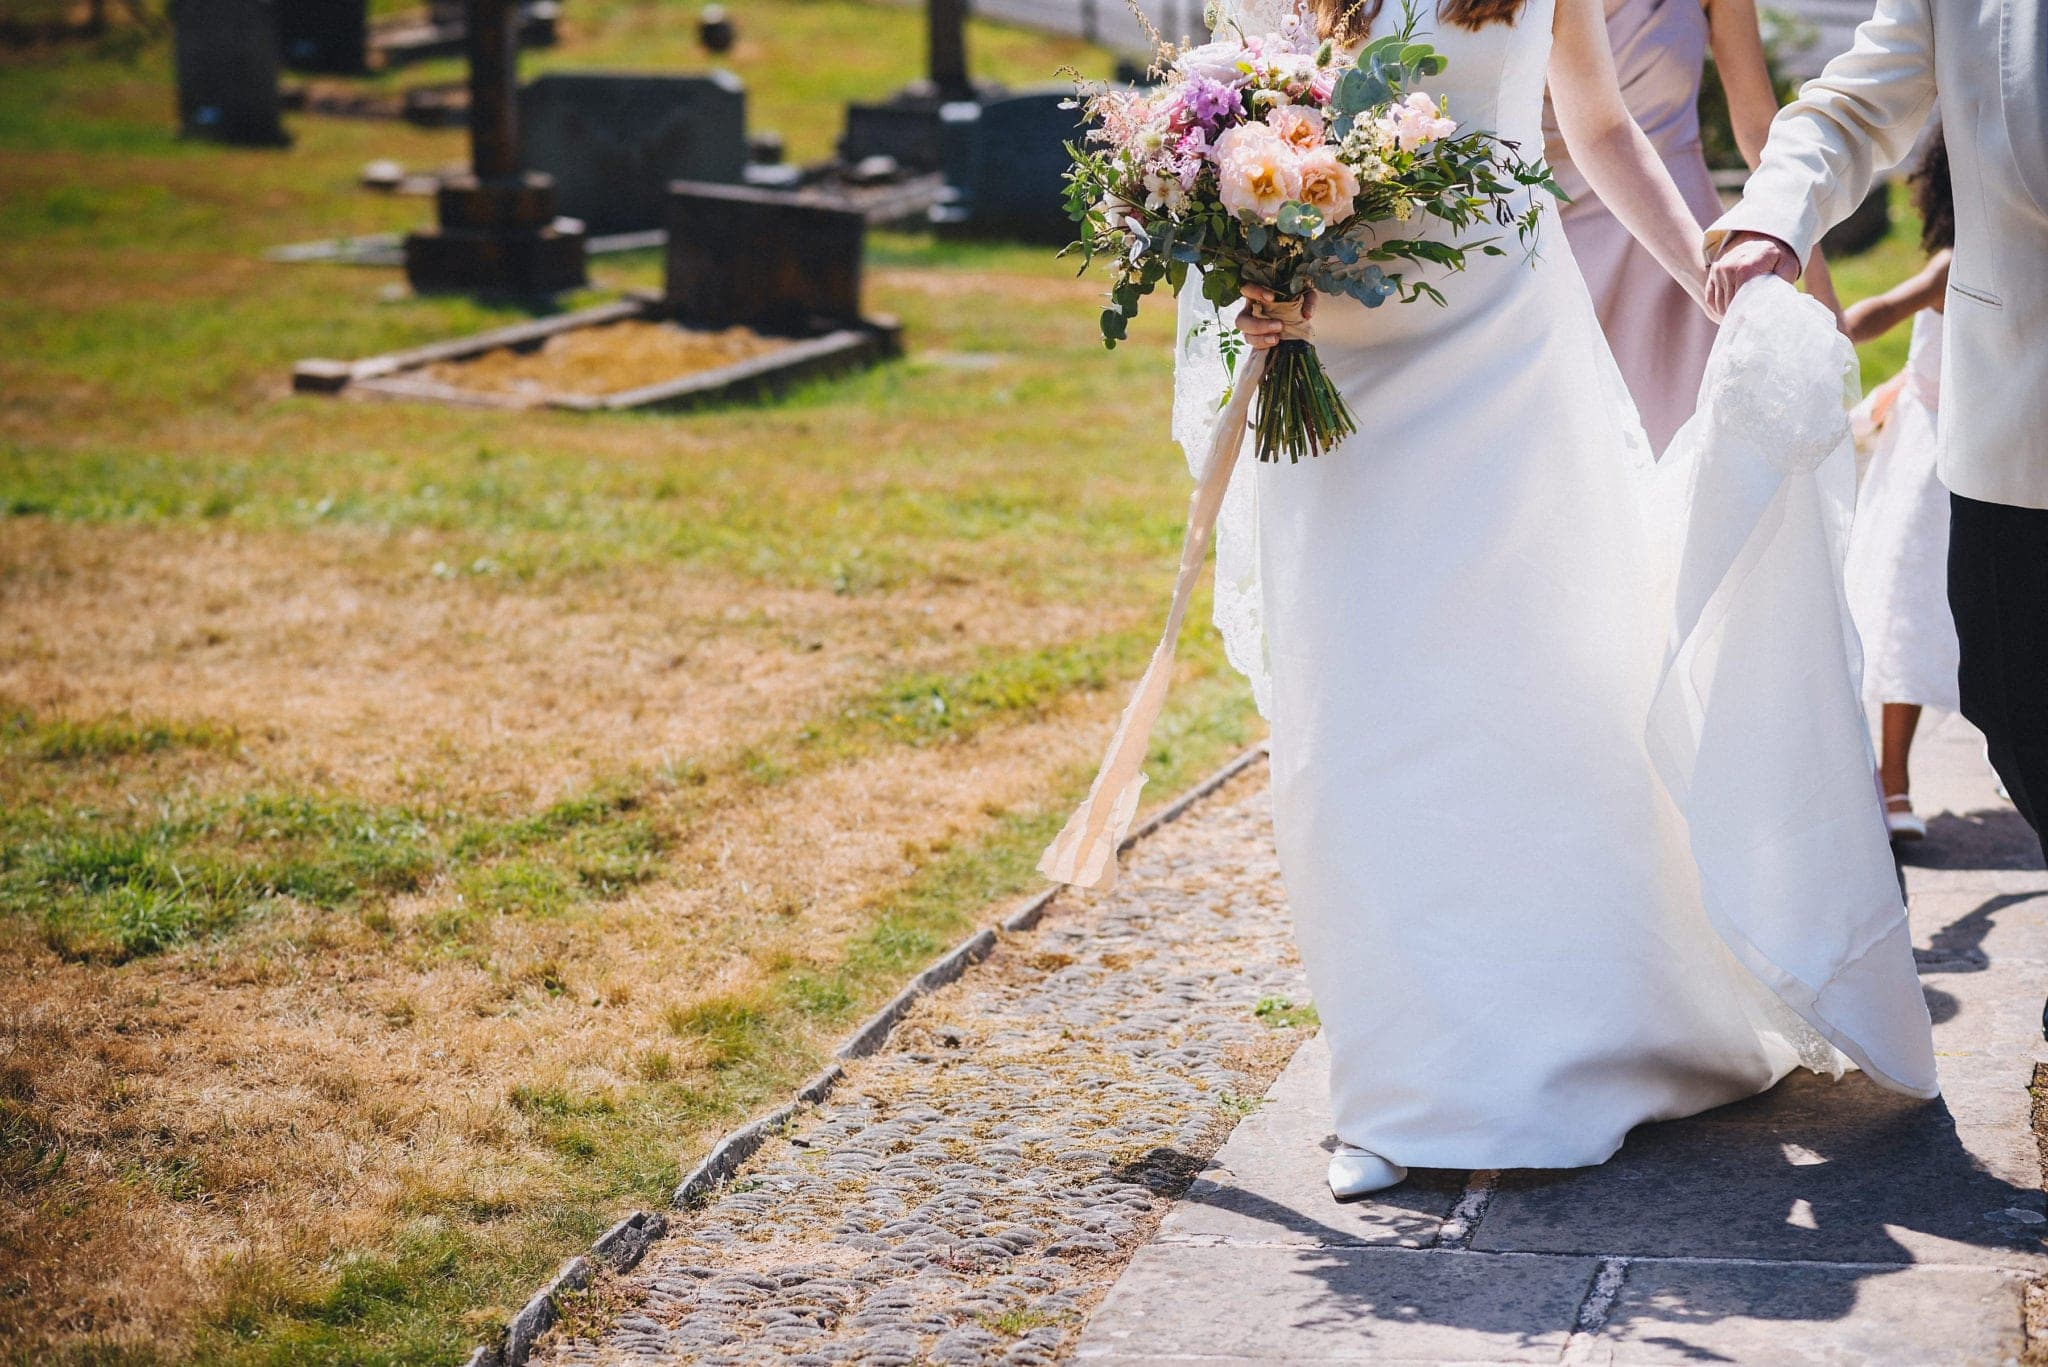 Lower half of bride's dress and bouquet as she walks up path to the church